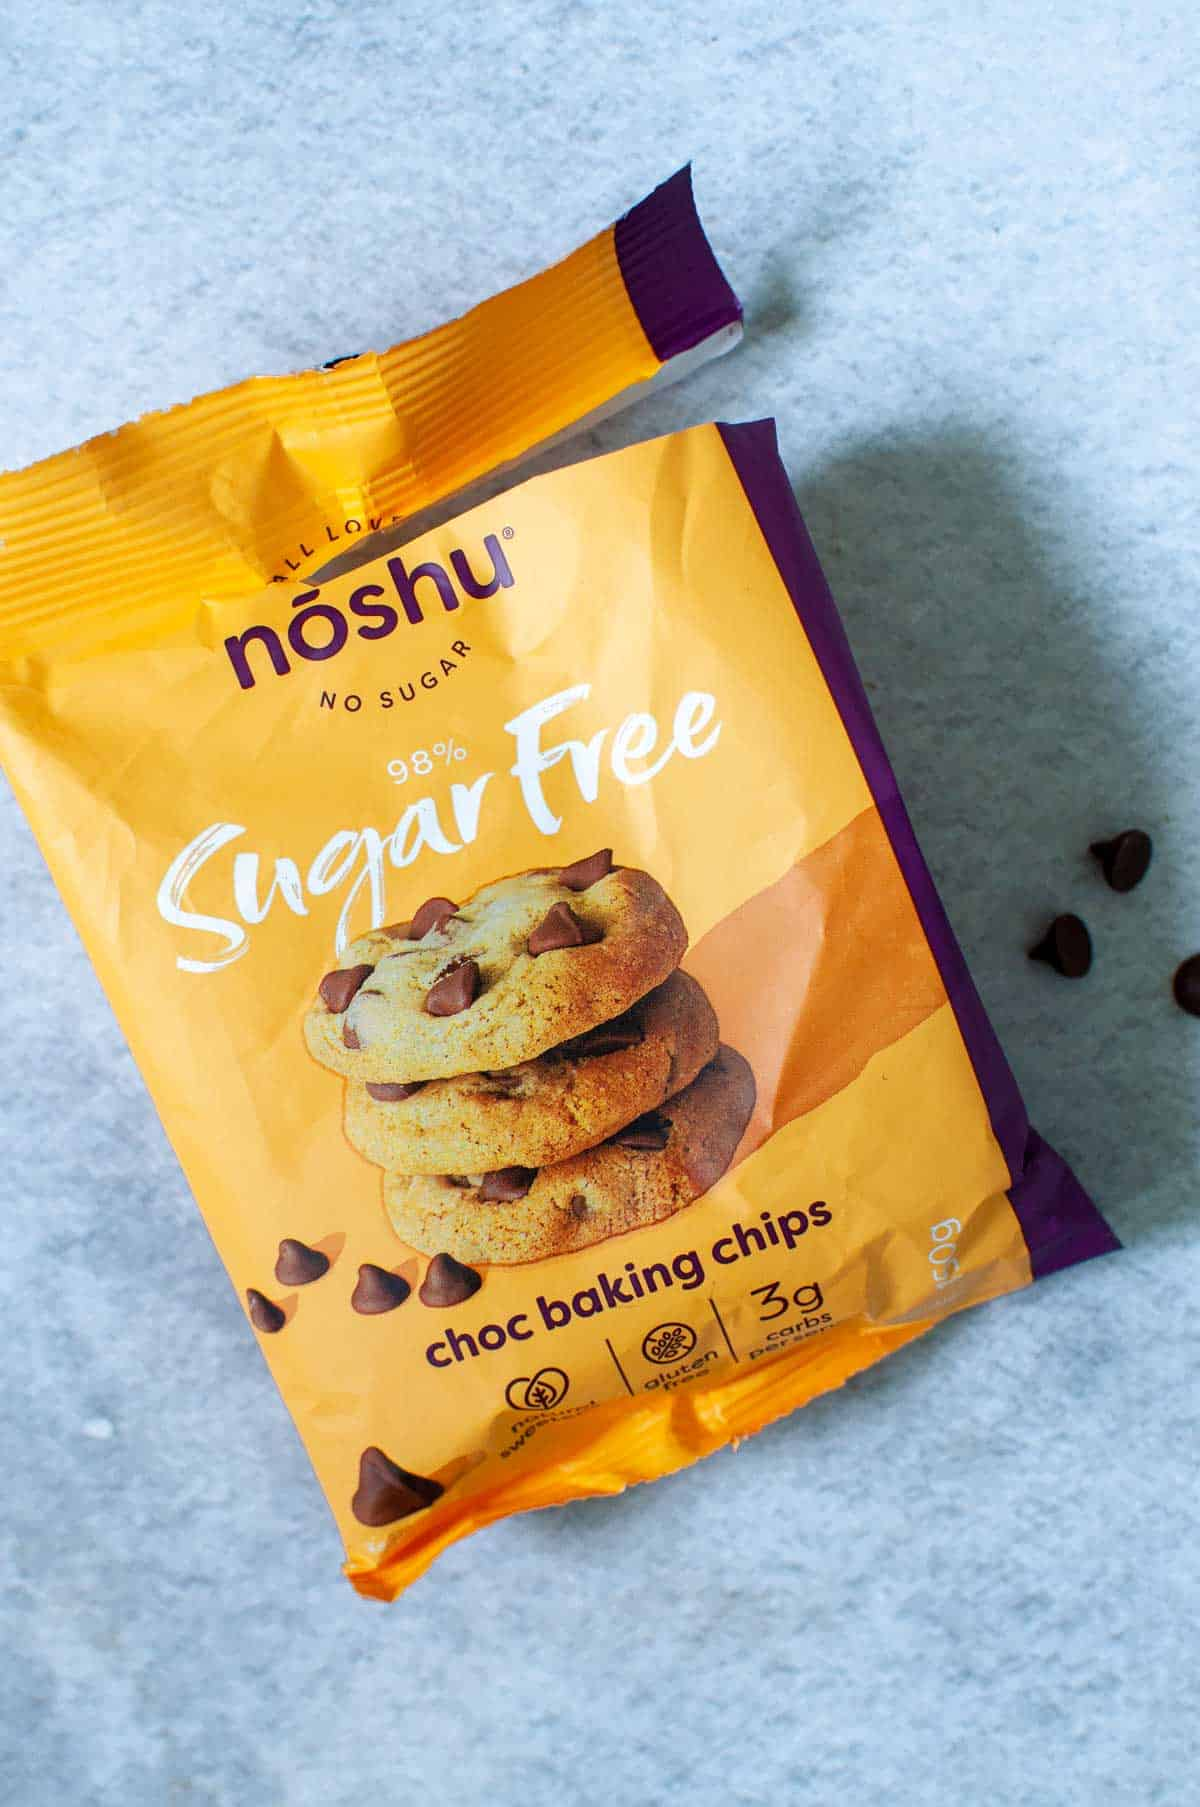 A packet of NoShu sugar free chocolate chips